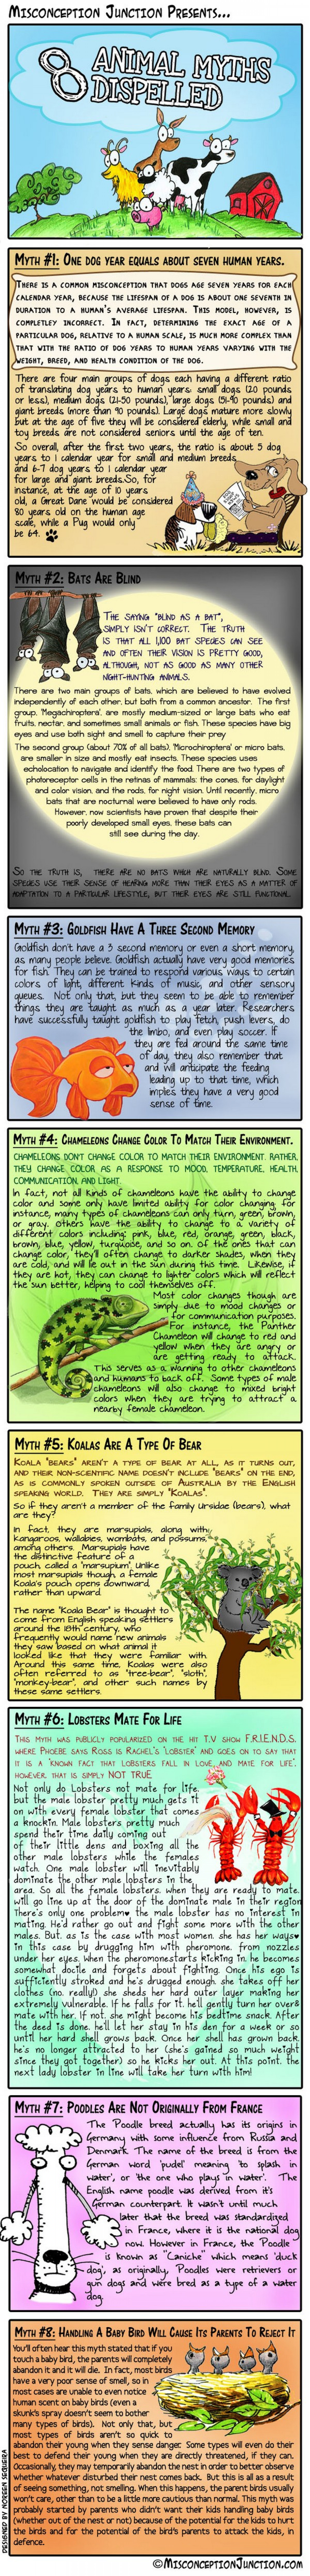 8 Animal Myths Dispelled Infographic